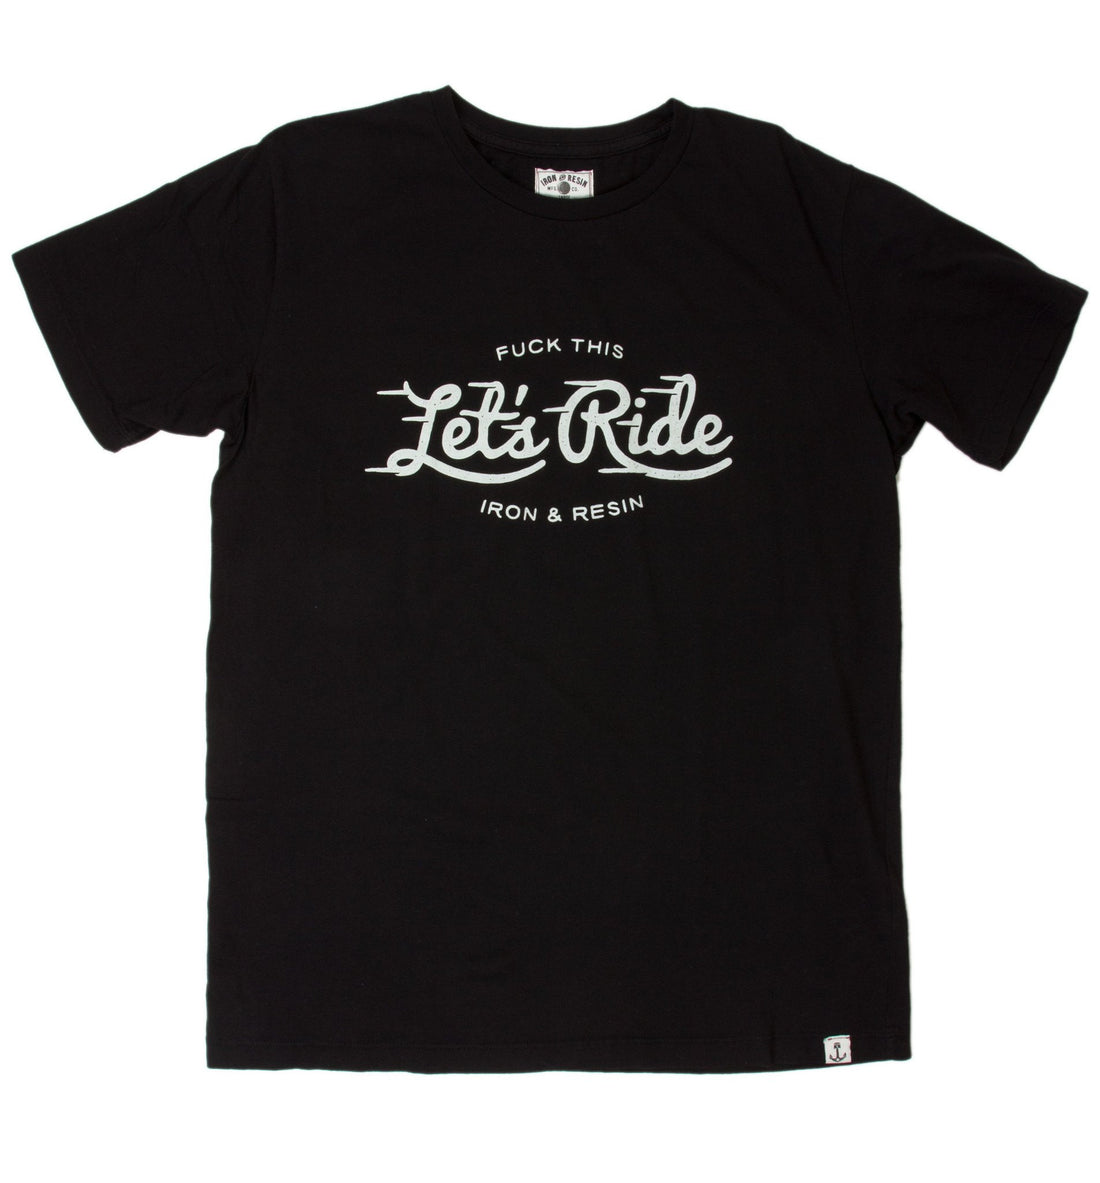 INR Let's Ride Tee - Apparel: Men's: Graphic T-Shirts - Iron and Resin